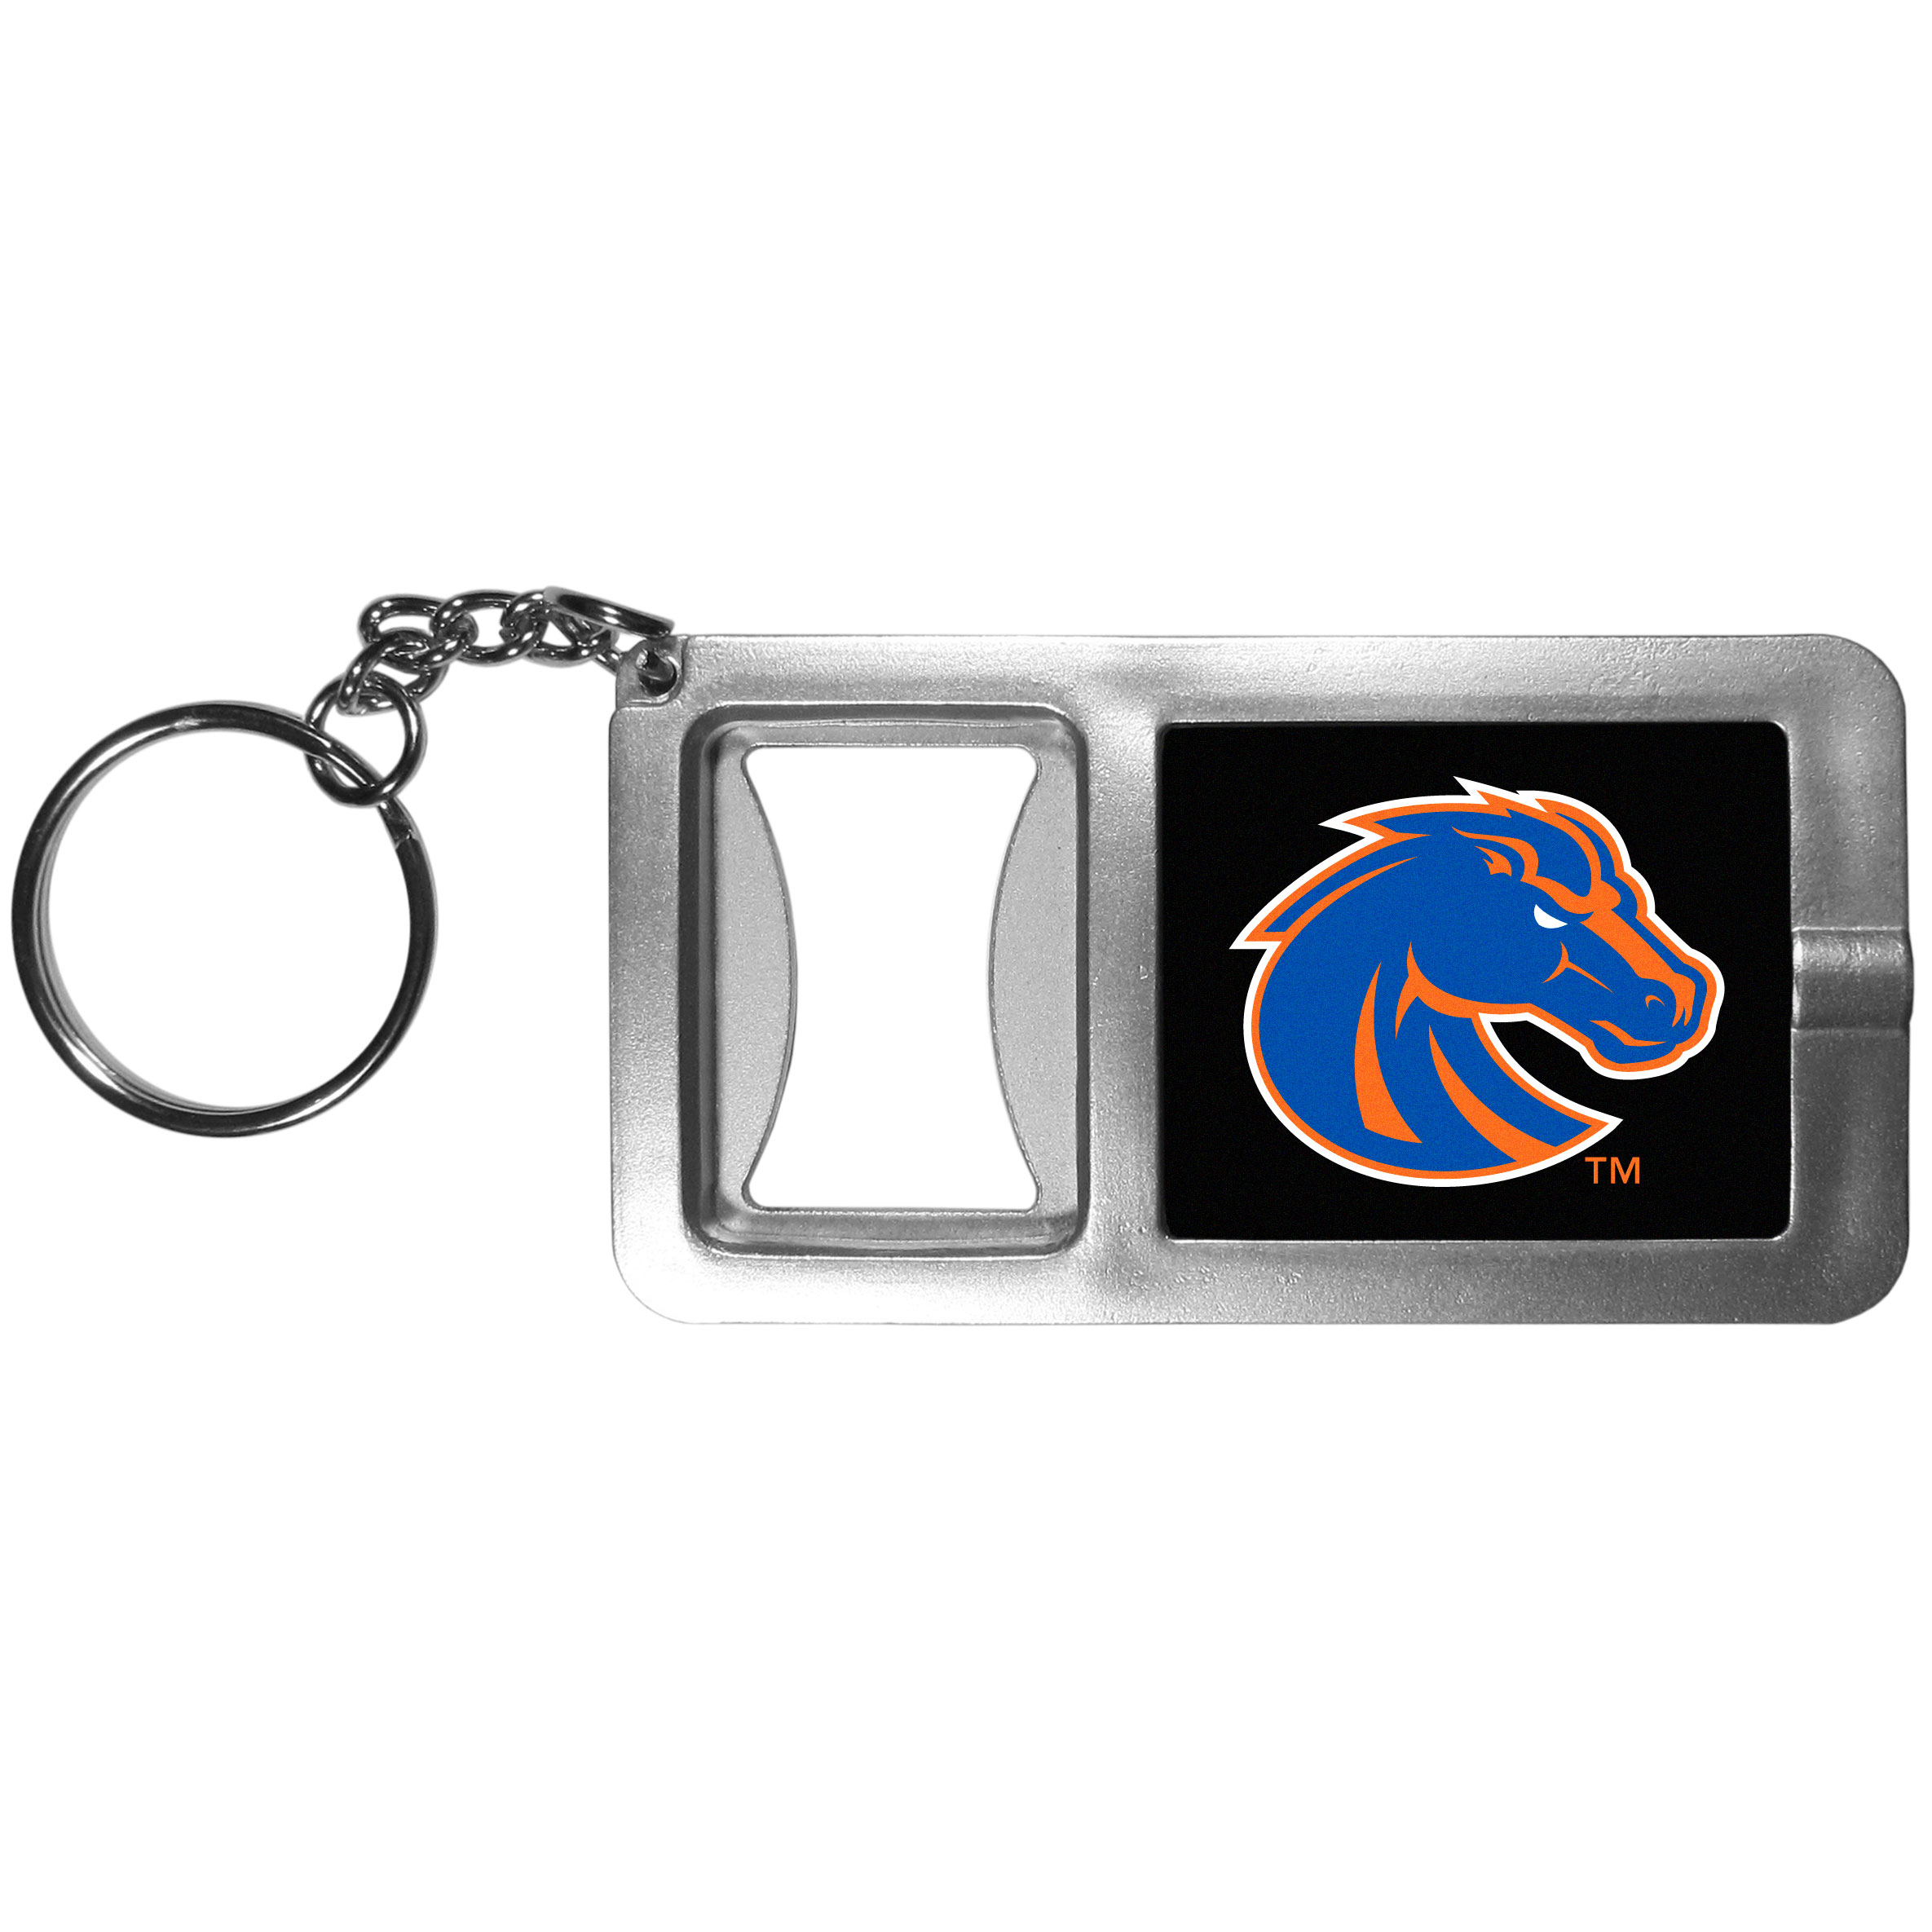 Boise St. Broncos Flashlight Key Chain with Bottle Opener - Never be without light with our Boise St. Broncos flashlight keychain that features a handy bottle opener feature. This versatile key chain is perfect for camping and travel and is a great way to show off your team pride!